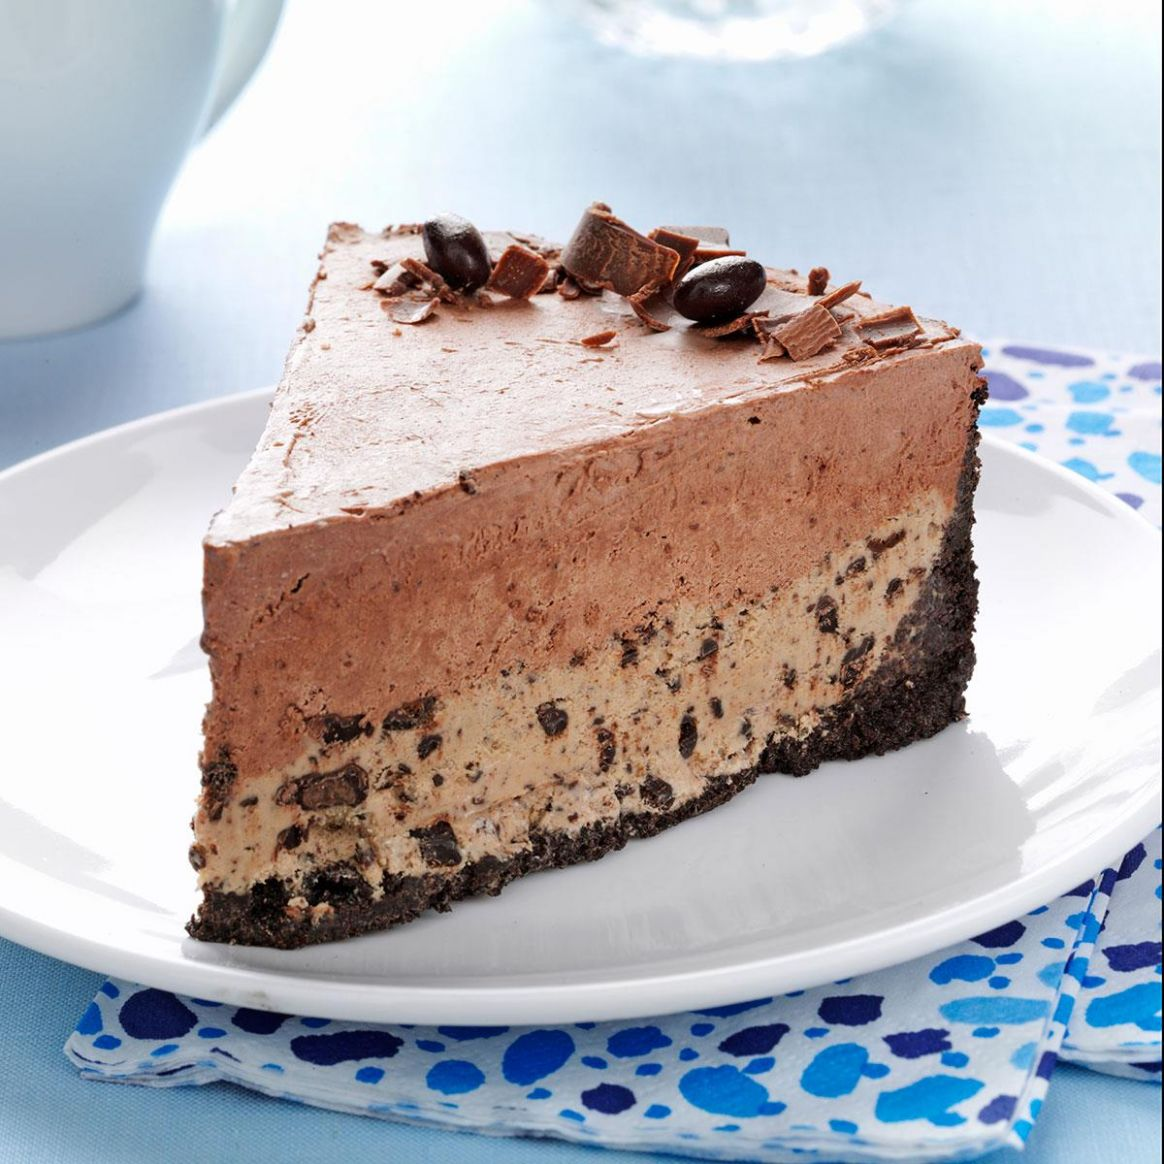 Chocolate-Coffee Bean Ice Cream Cake